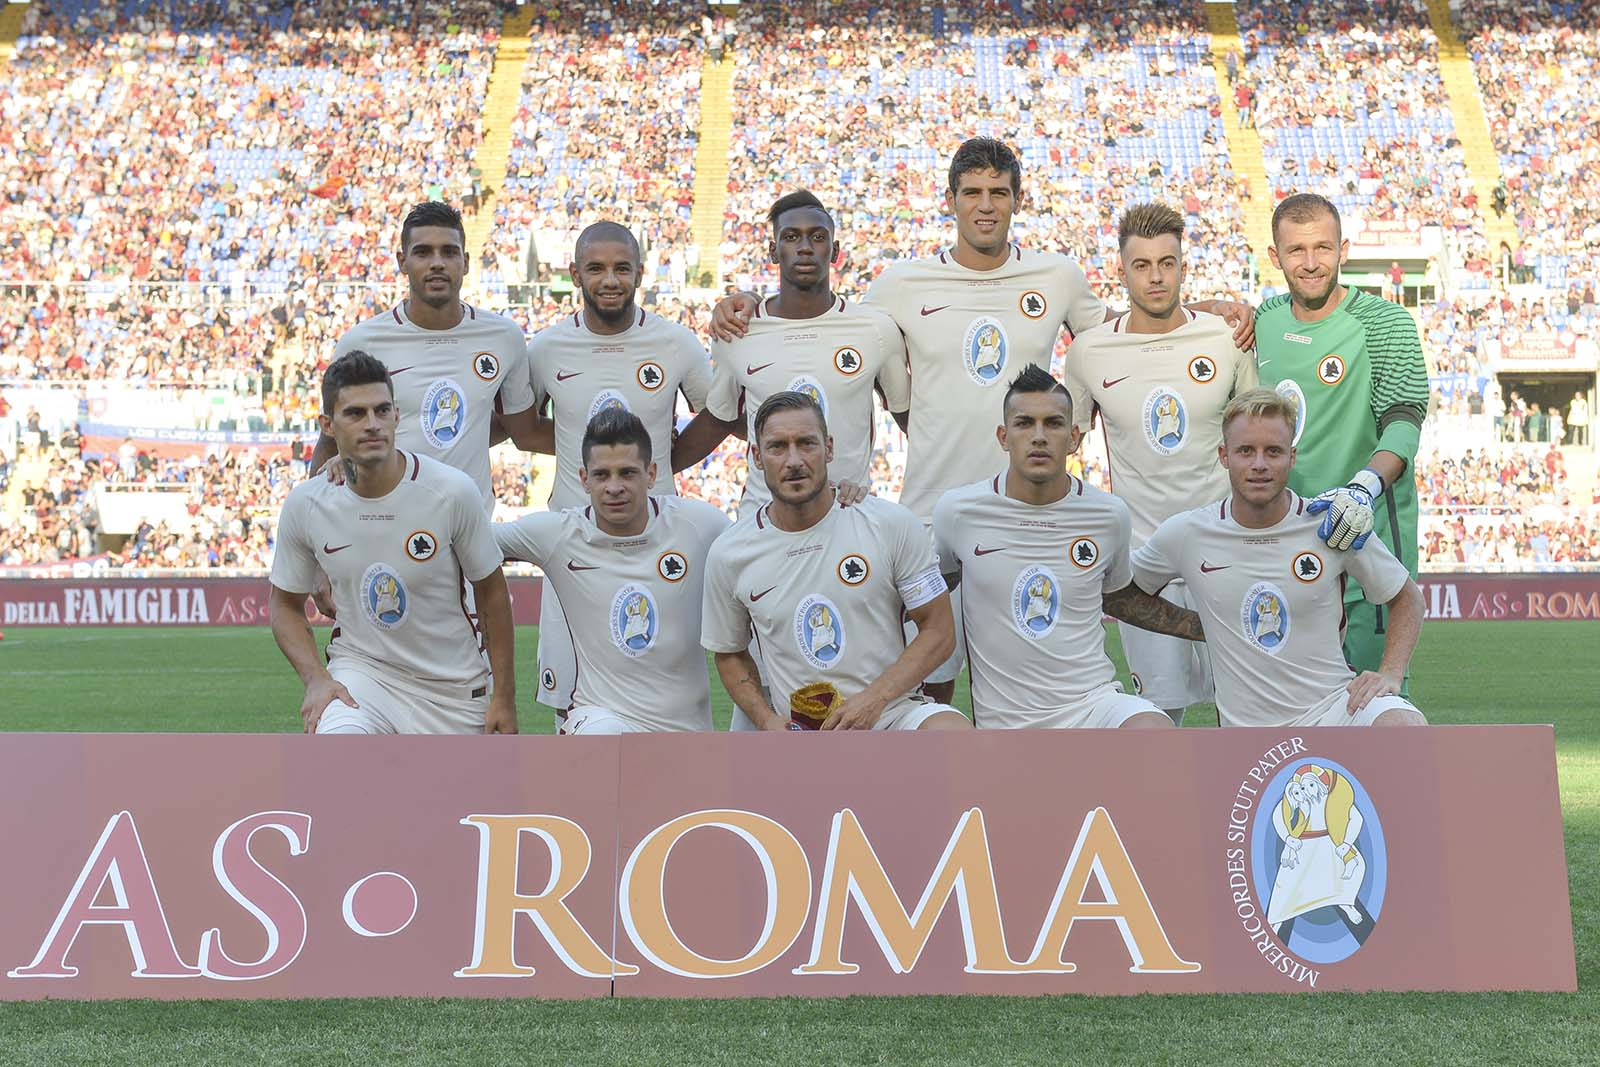 as-roma-special-kit squad